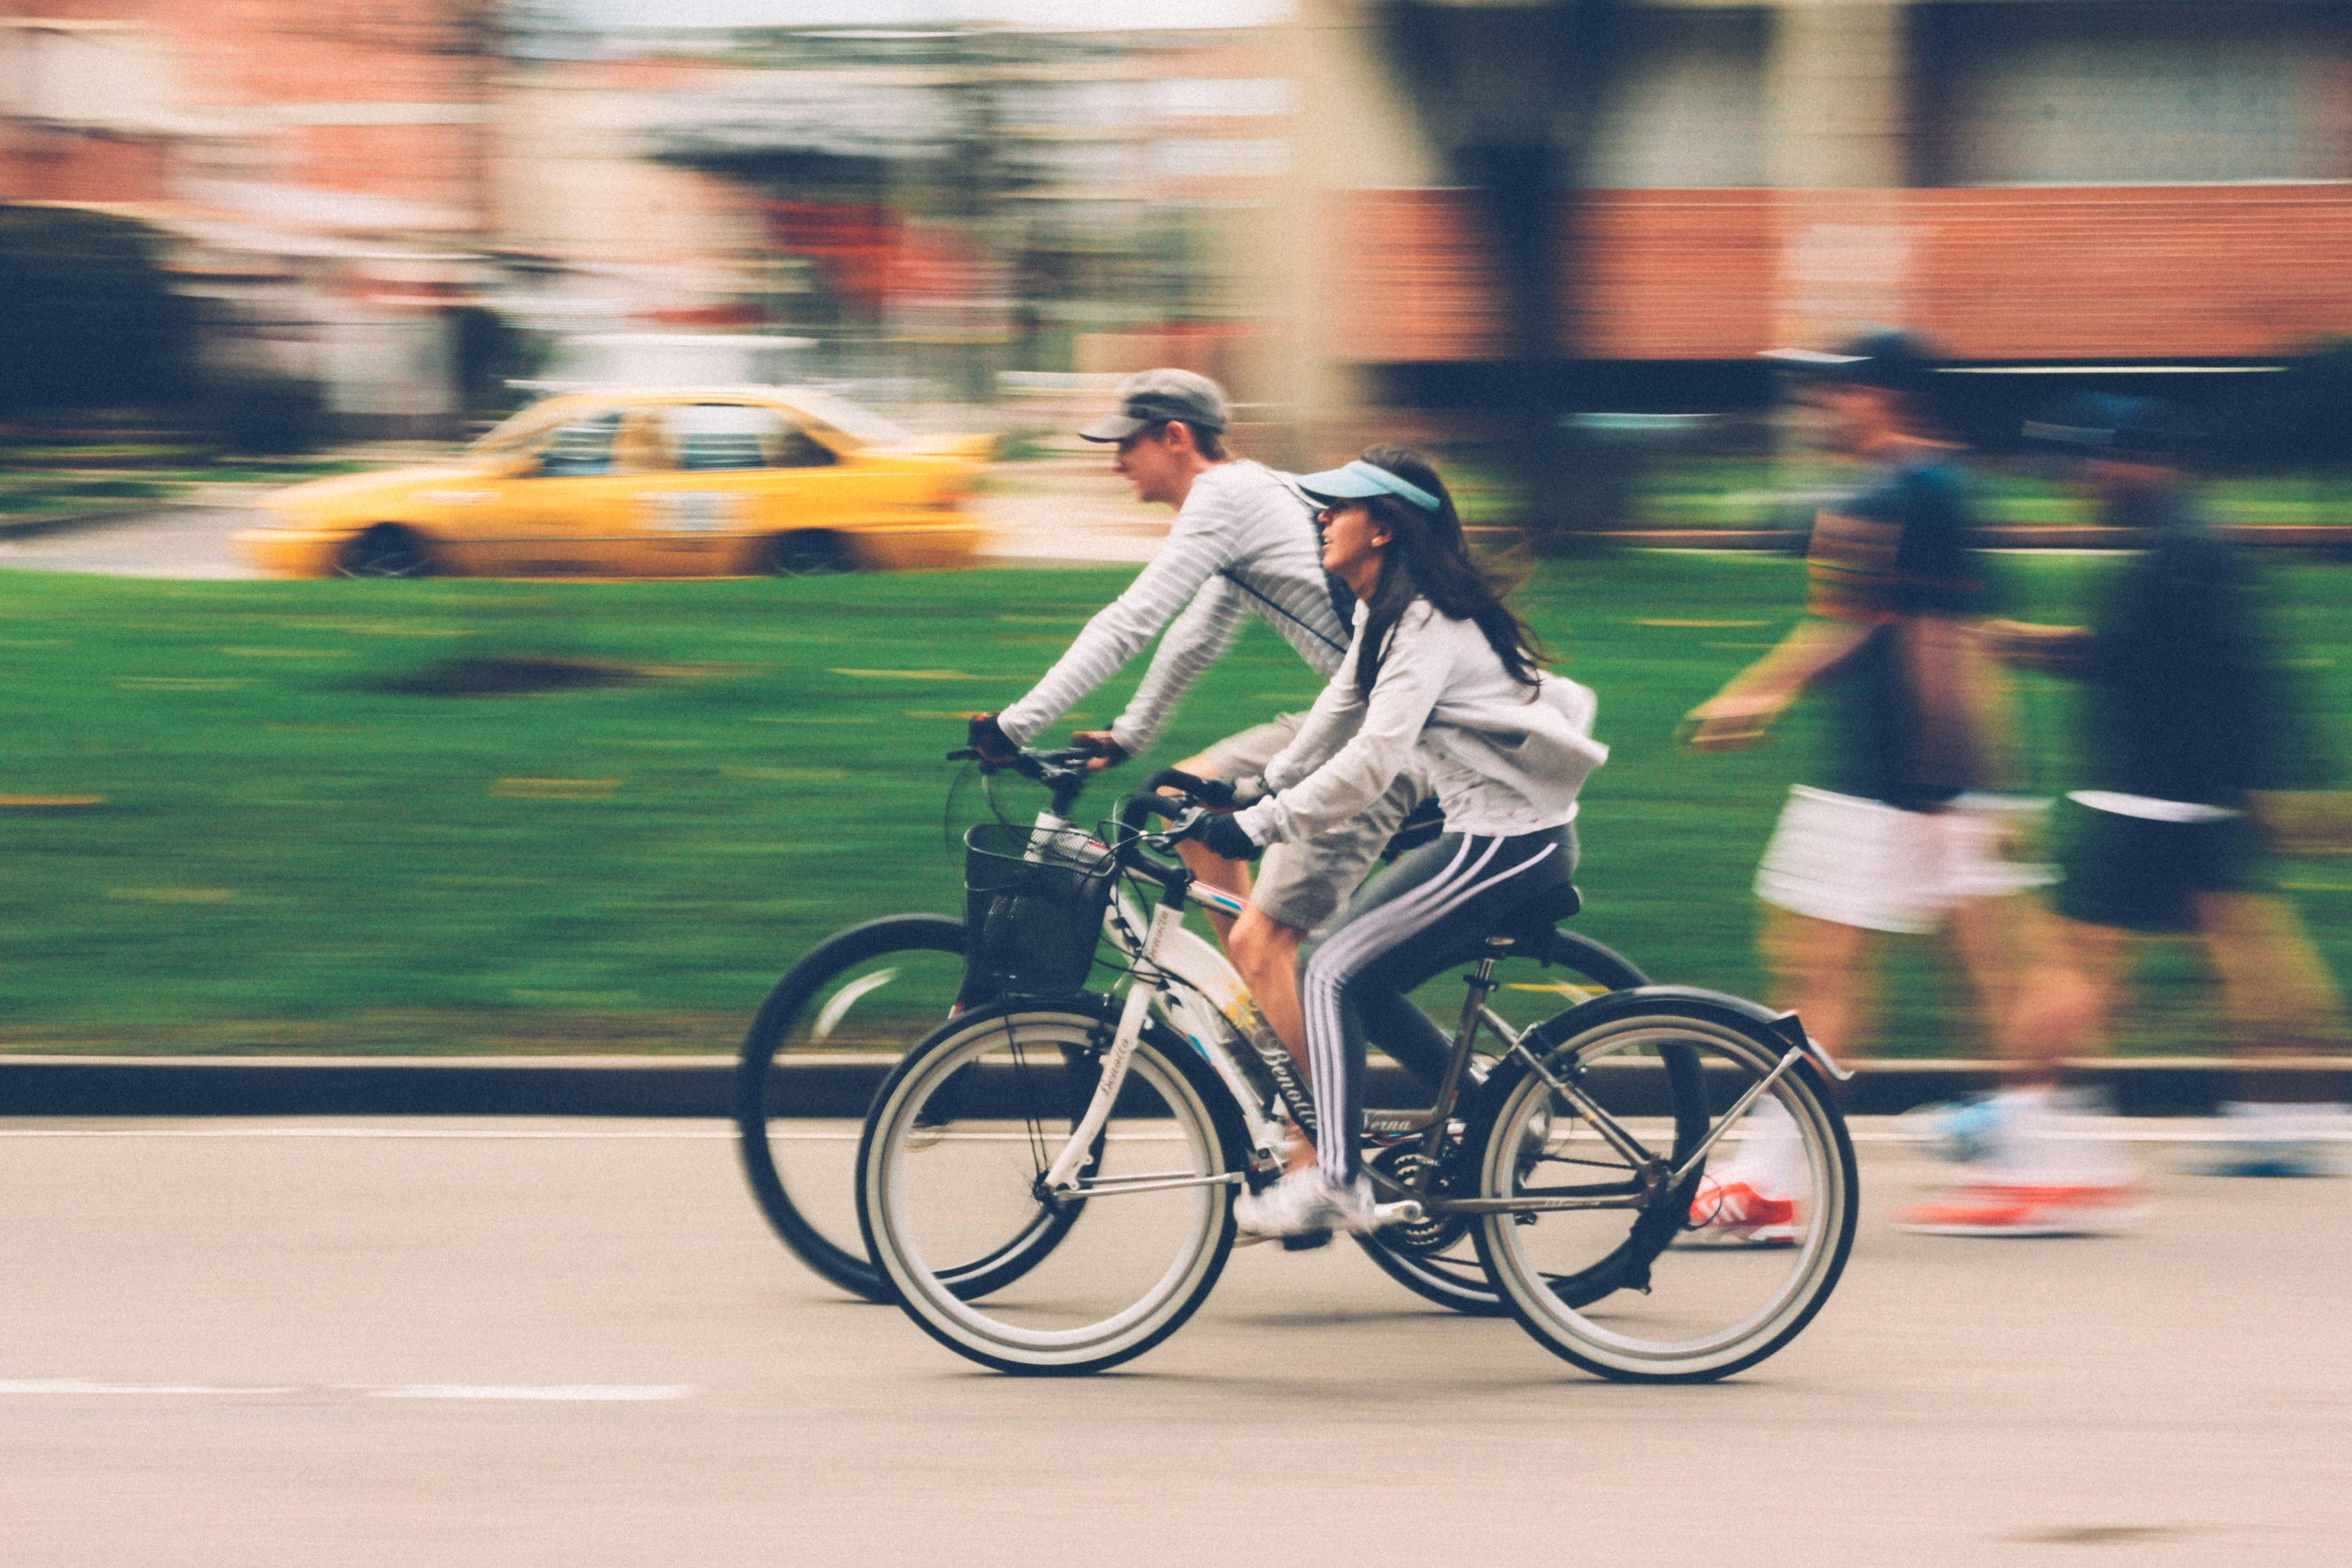 Woman and Man Riding on Bike